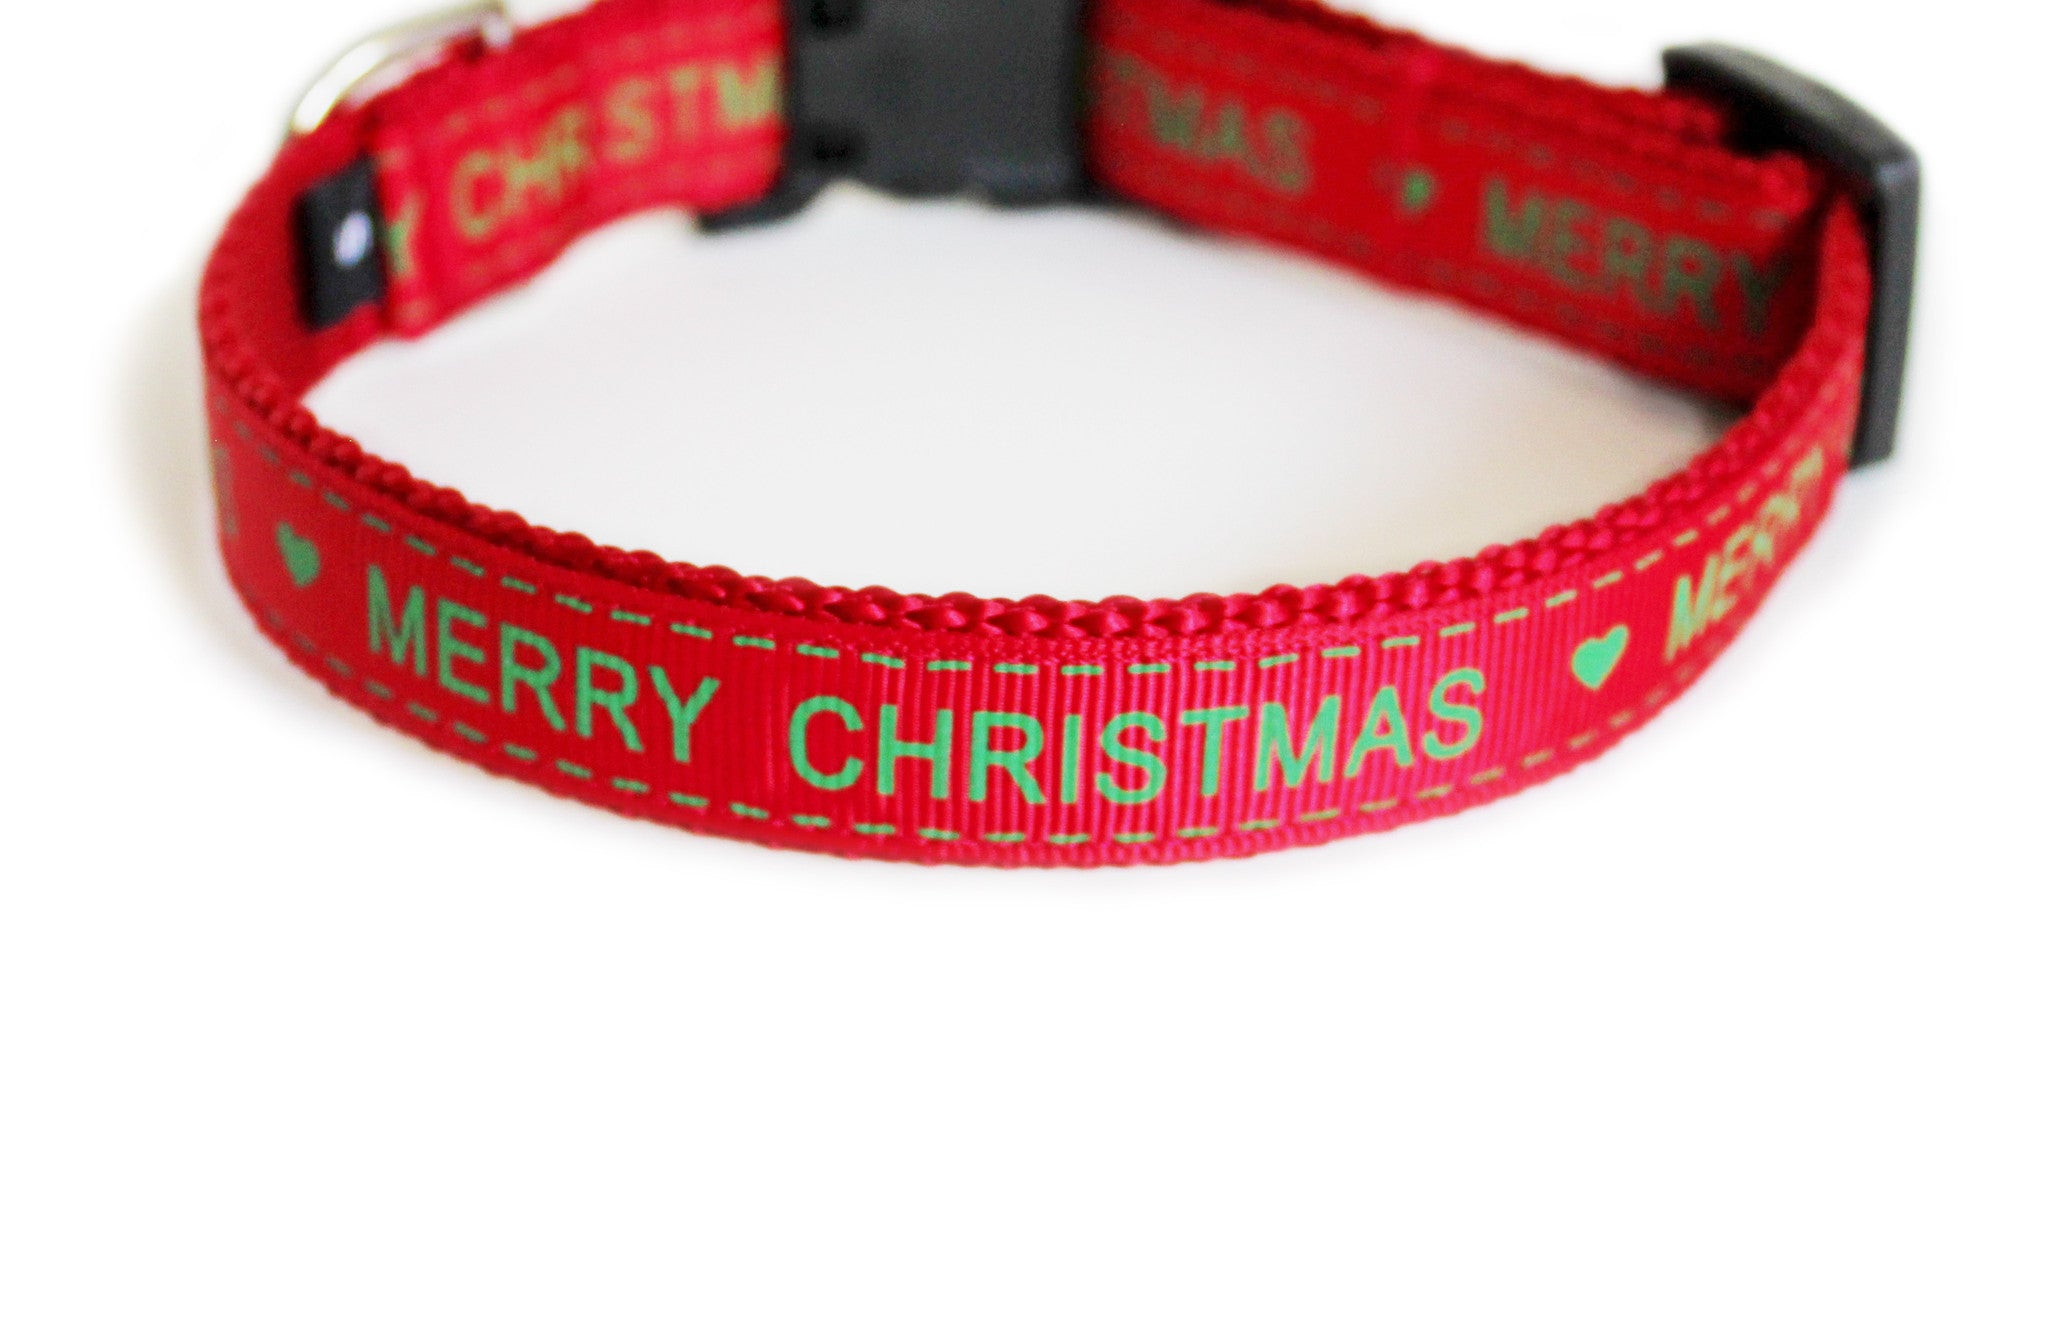 Merry Christmas Dog Collar - You Had Me at Woof